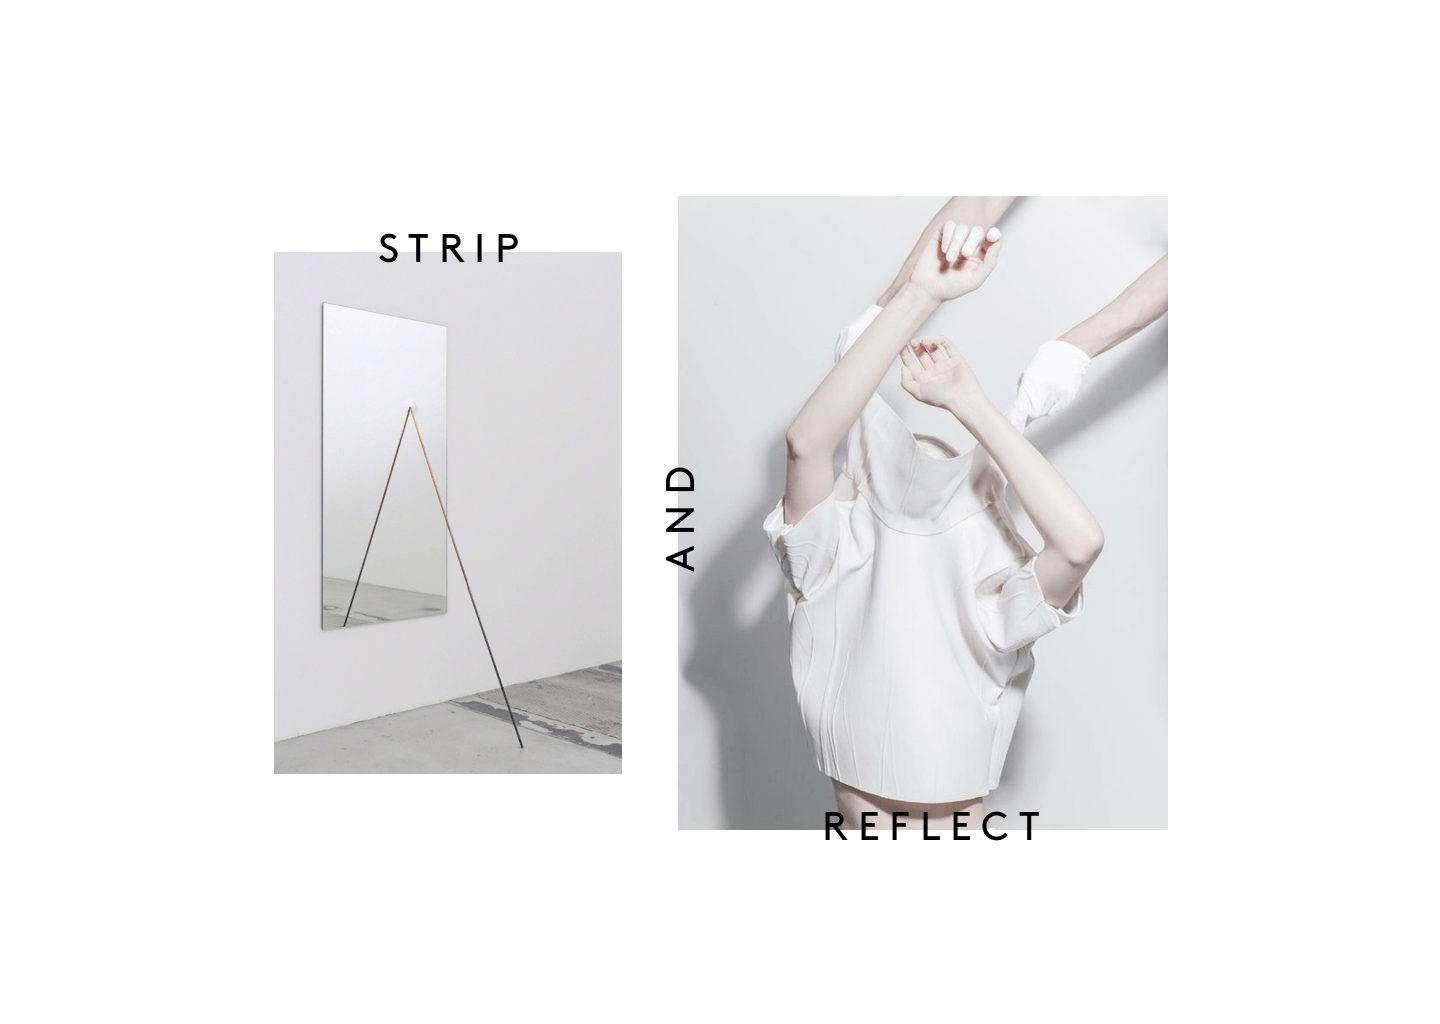 Strip and Reflect